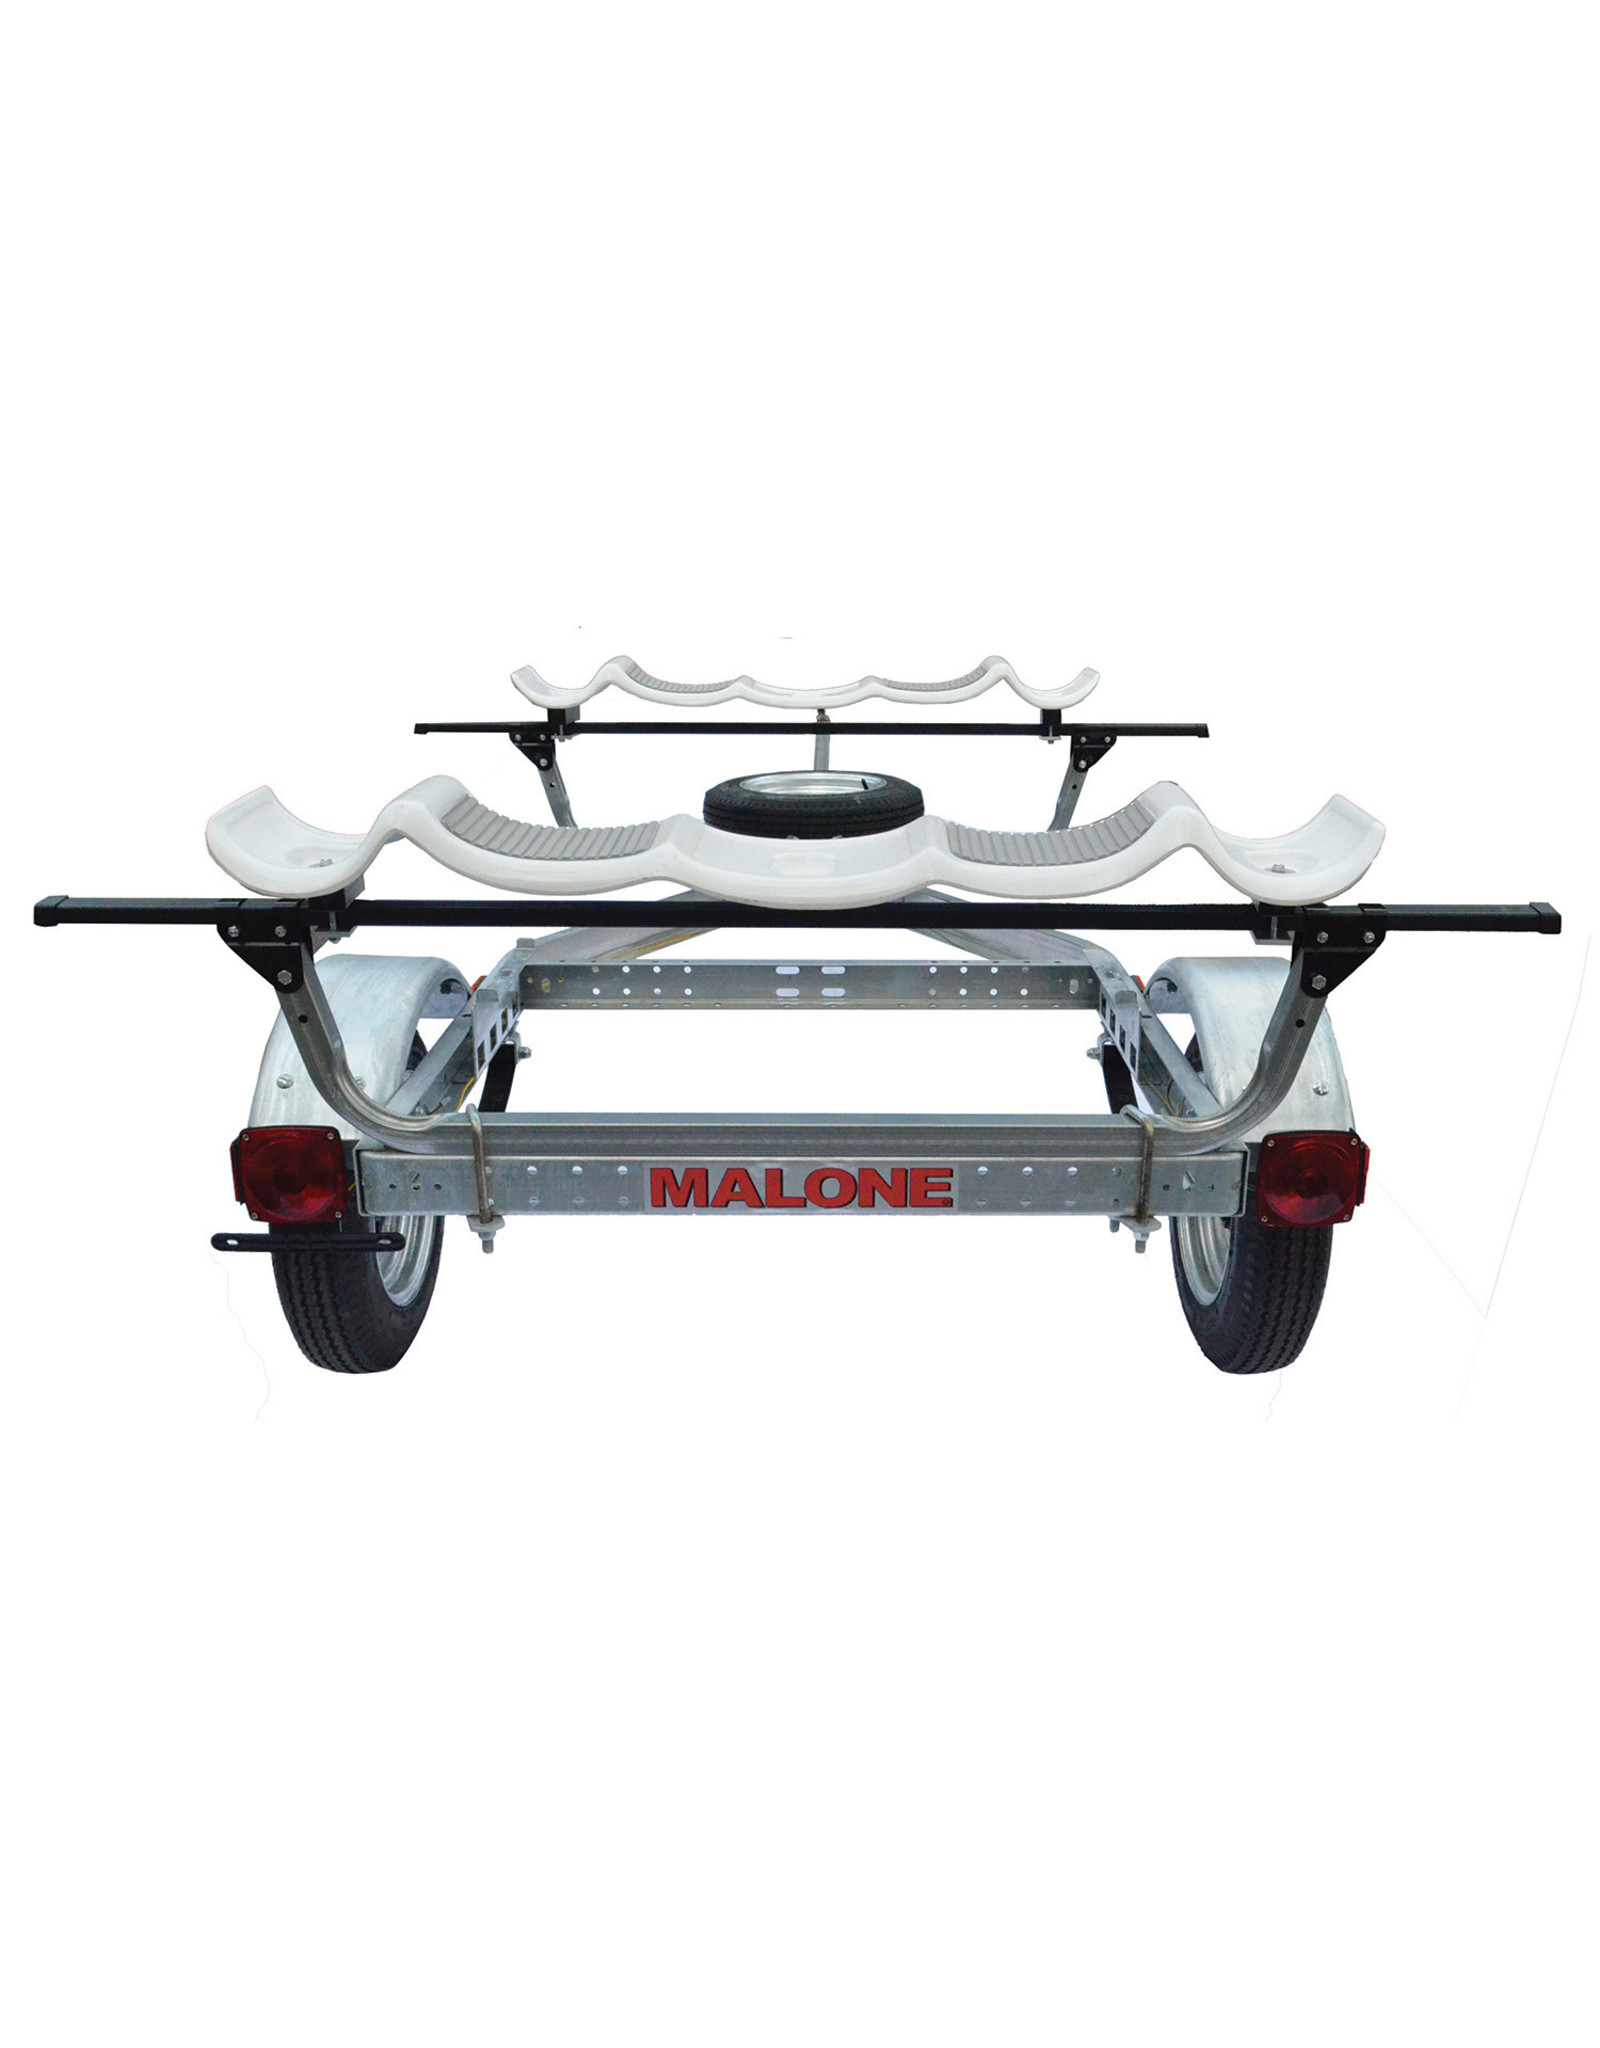 Malone Auto Rack Malone Hobie-Style Cradle Adapter (Set of 6)